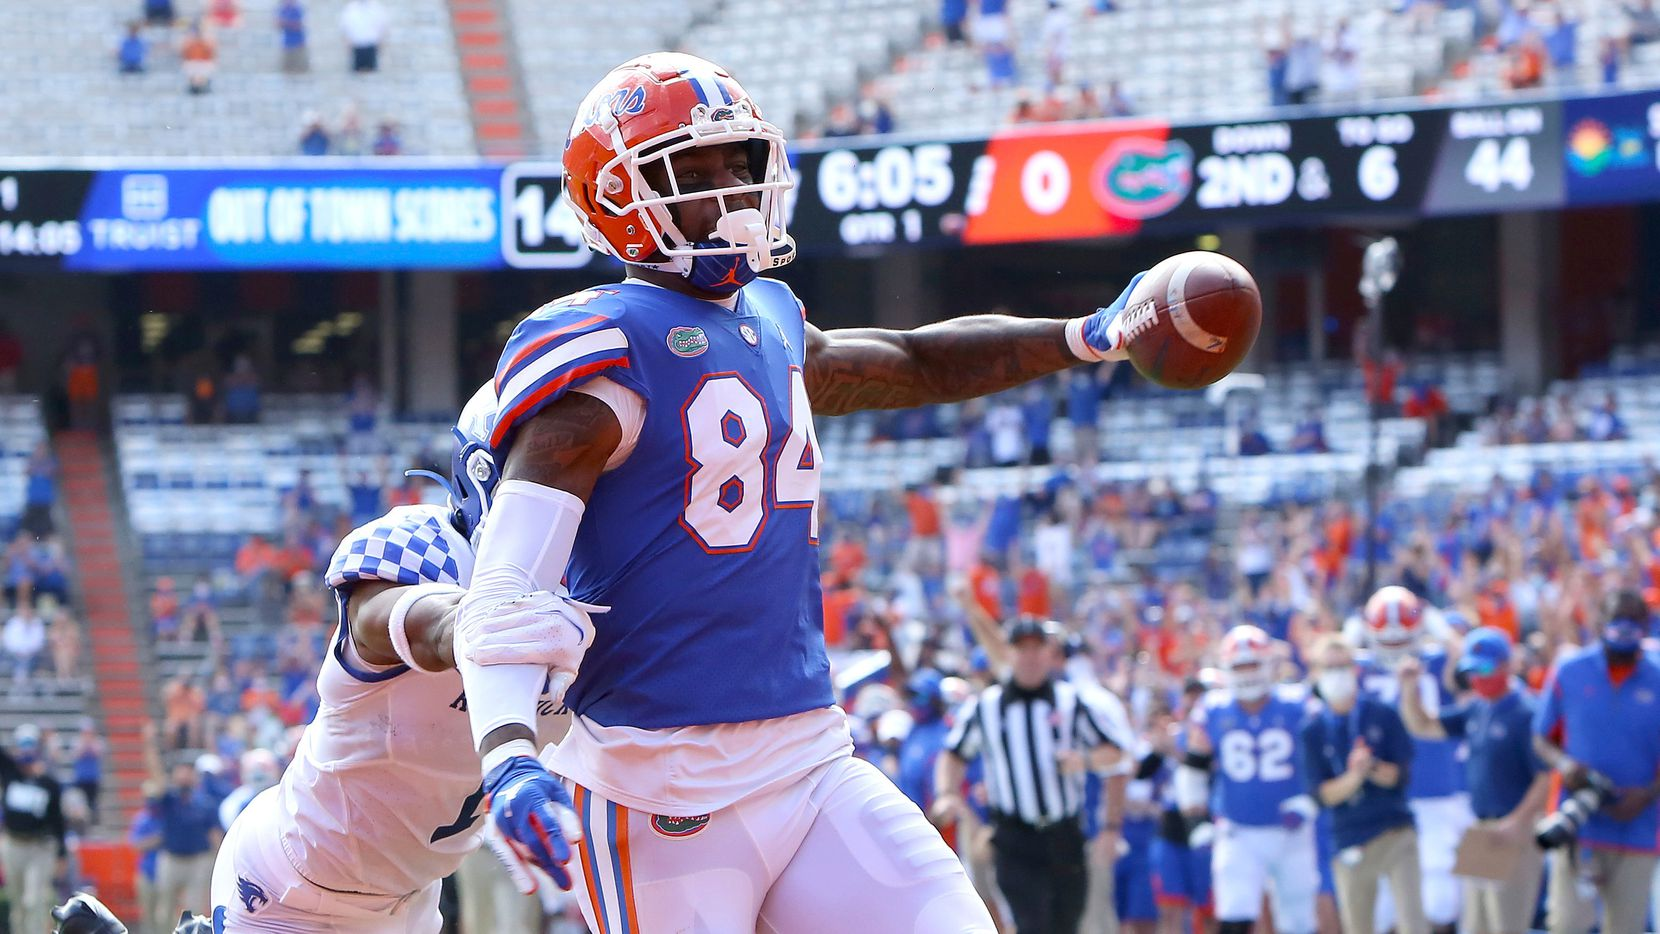 FILE - Florida Gators tight end Kyle Pitts (84) scores a touchdown during an NCAA college football game against Kentucky in Gainesville, Fla., in this Nov. 28, 2020, file photo.